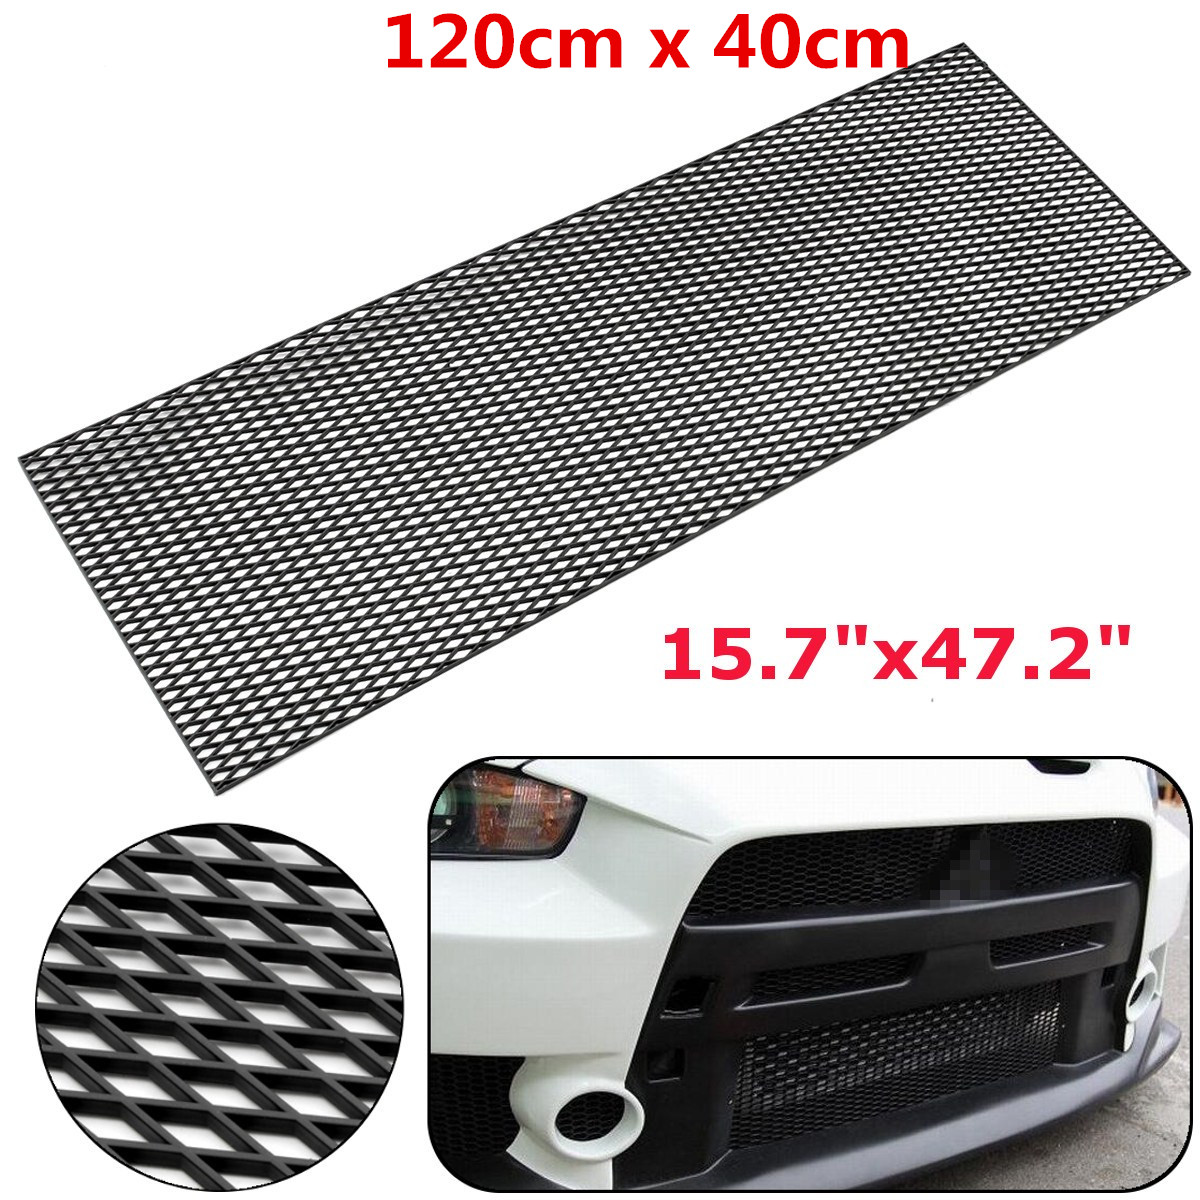 120cm Universal Car Styling Honeycomb Mesh Grill ABS Plastic Spoiler Front Bumper Hood Vent Air Intake ob 515 universal air flow vent hood covers for car silver pair